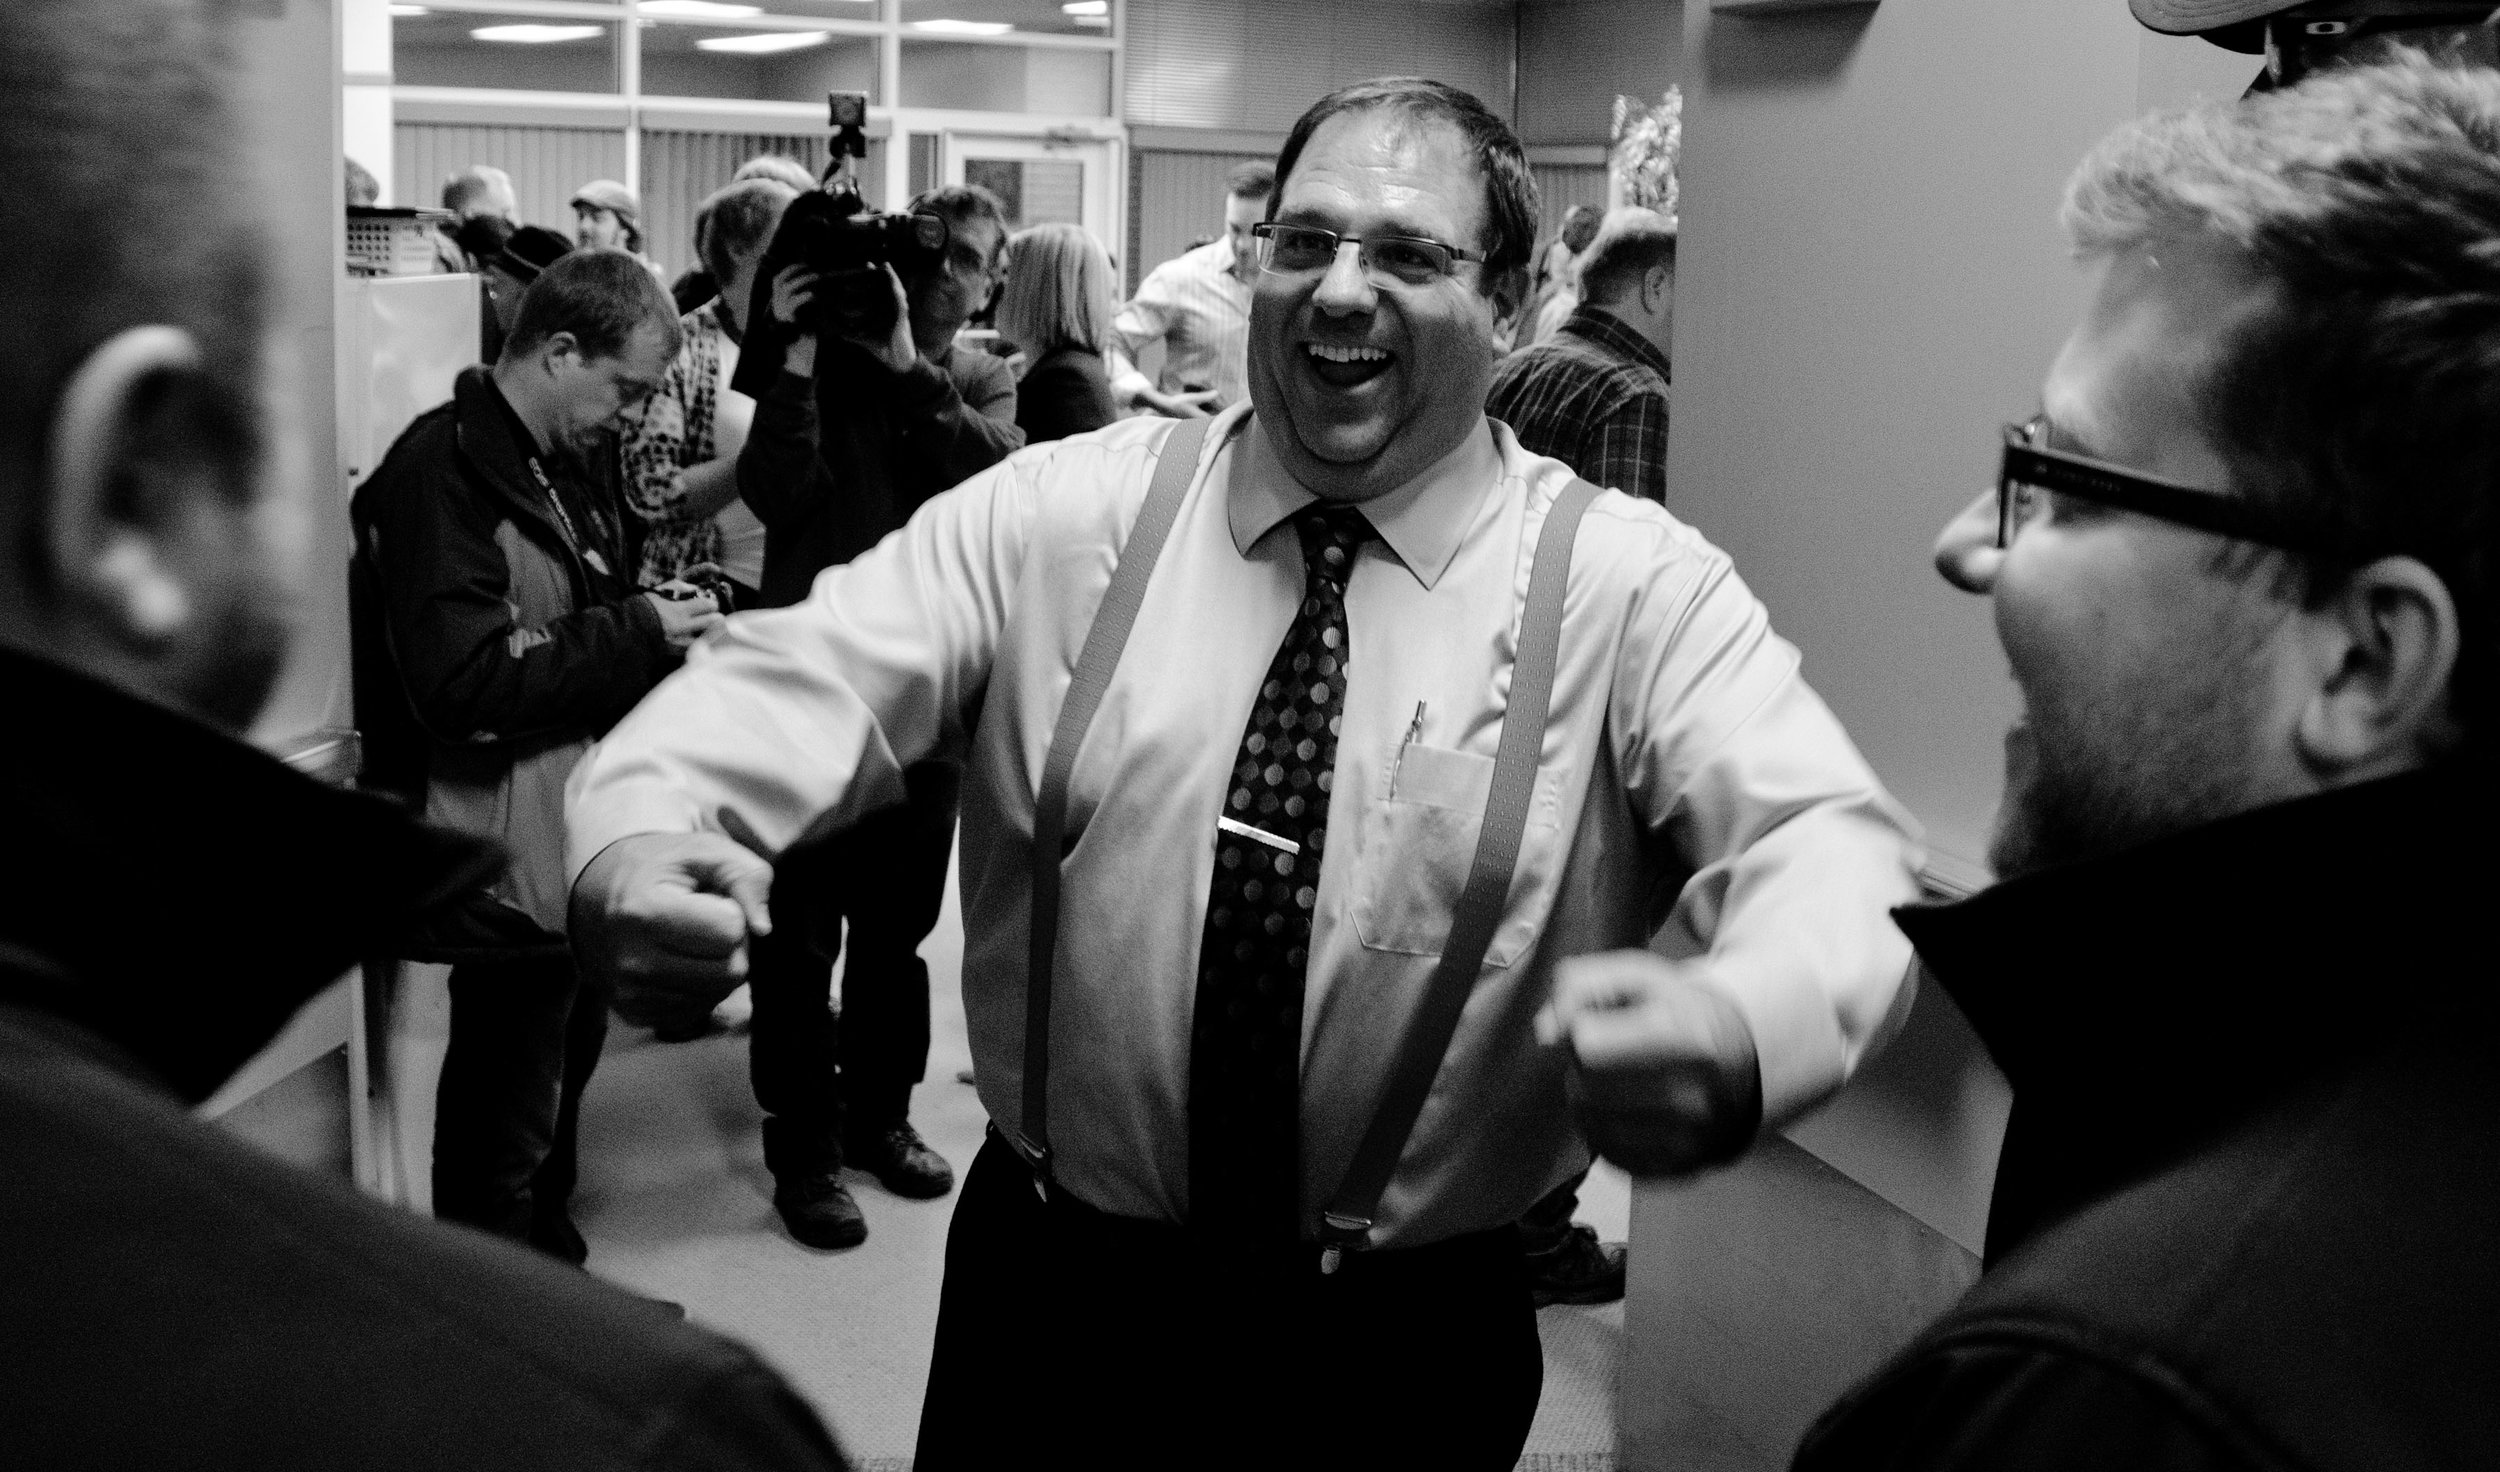 Aalbers was feeling fairly happy as well. Here, he gestures while speaking to attendees outside the front doors of the room rented in the Legacy Centre by his campaign.